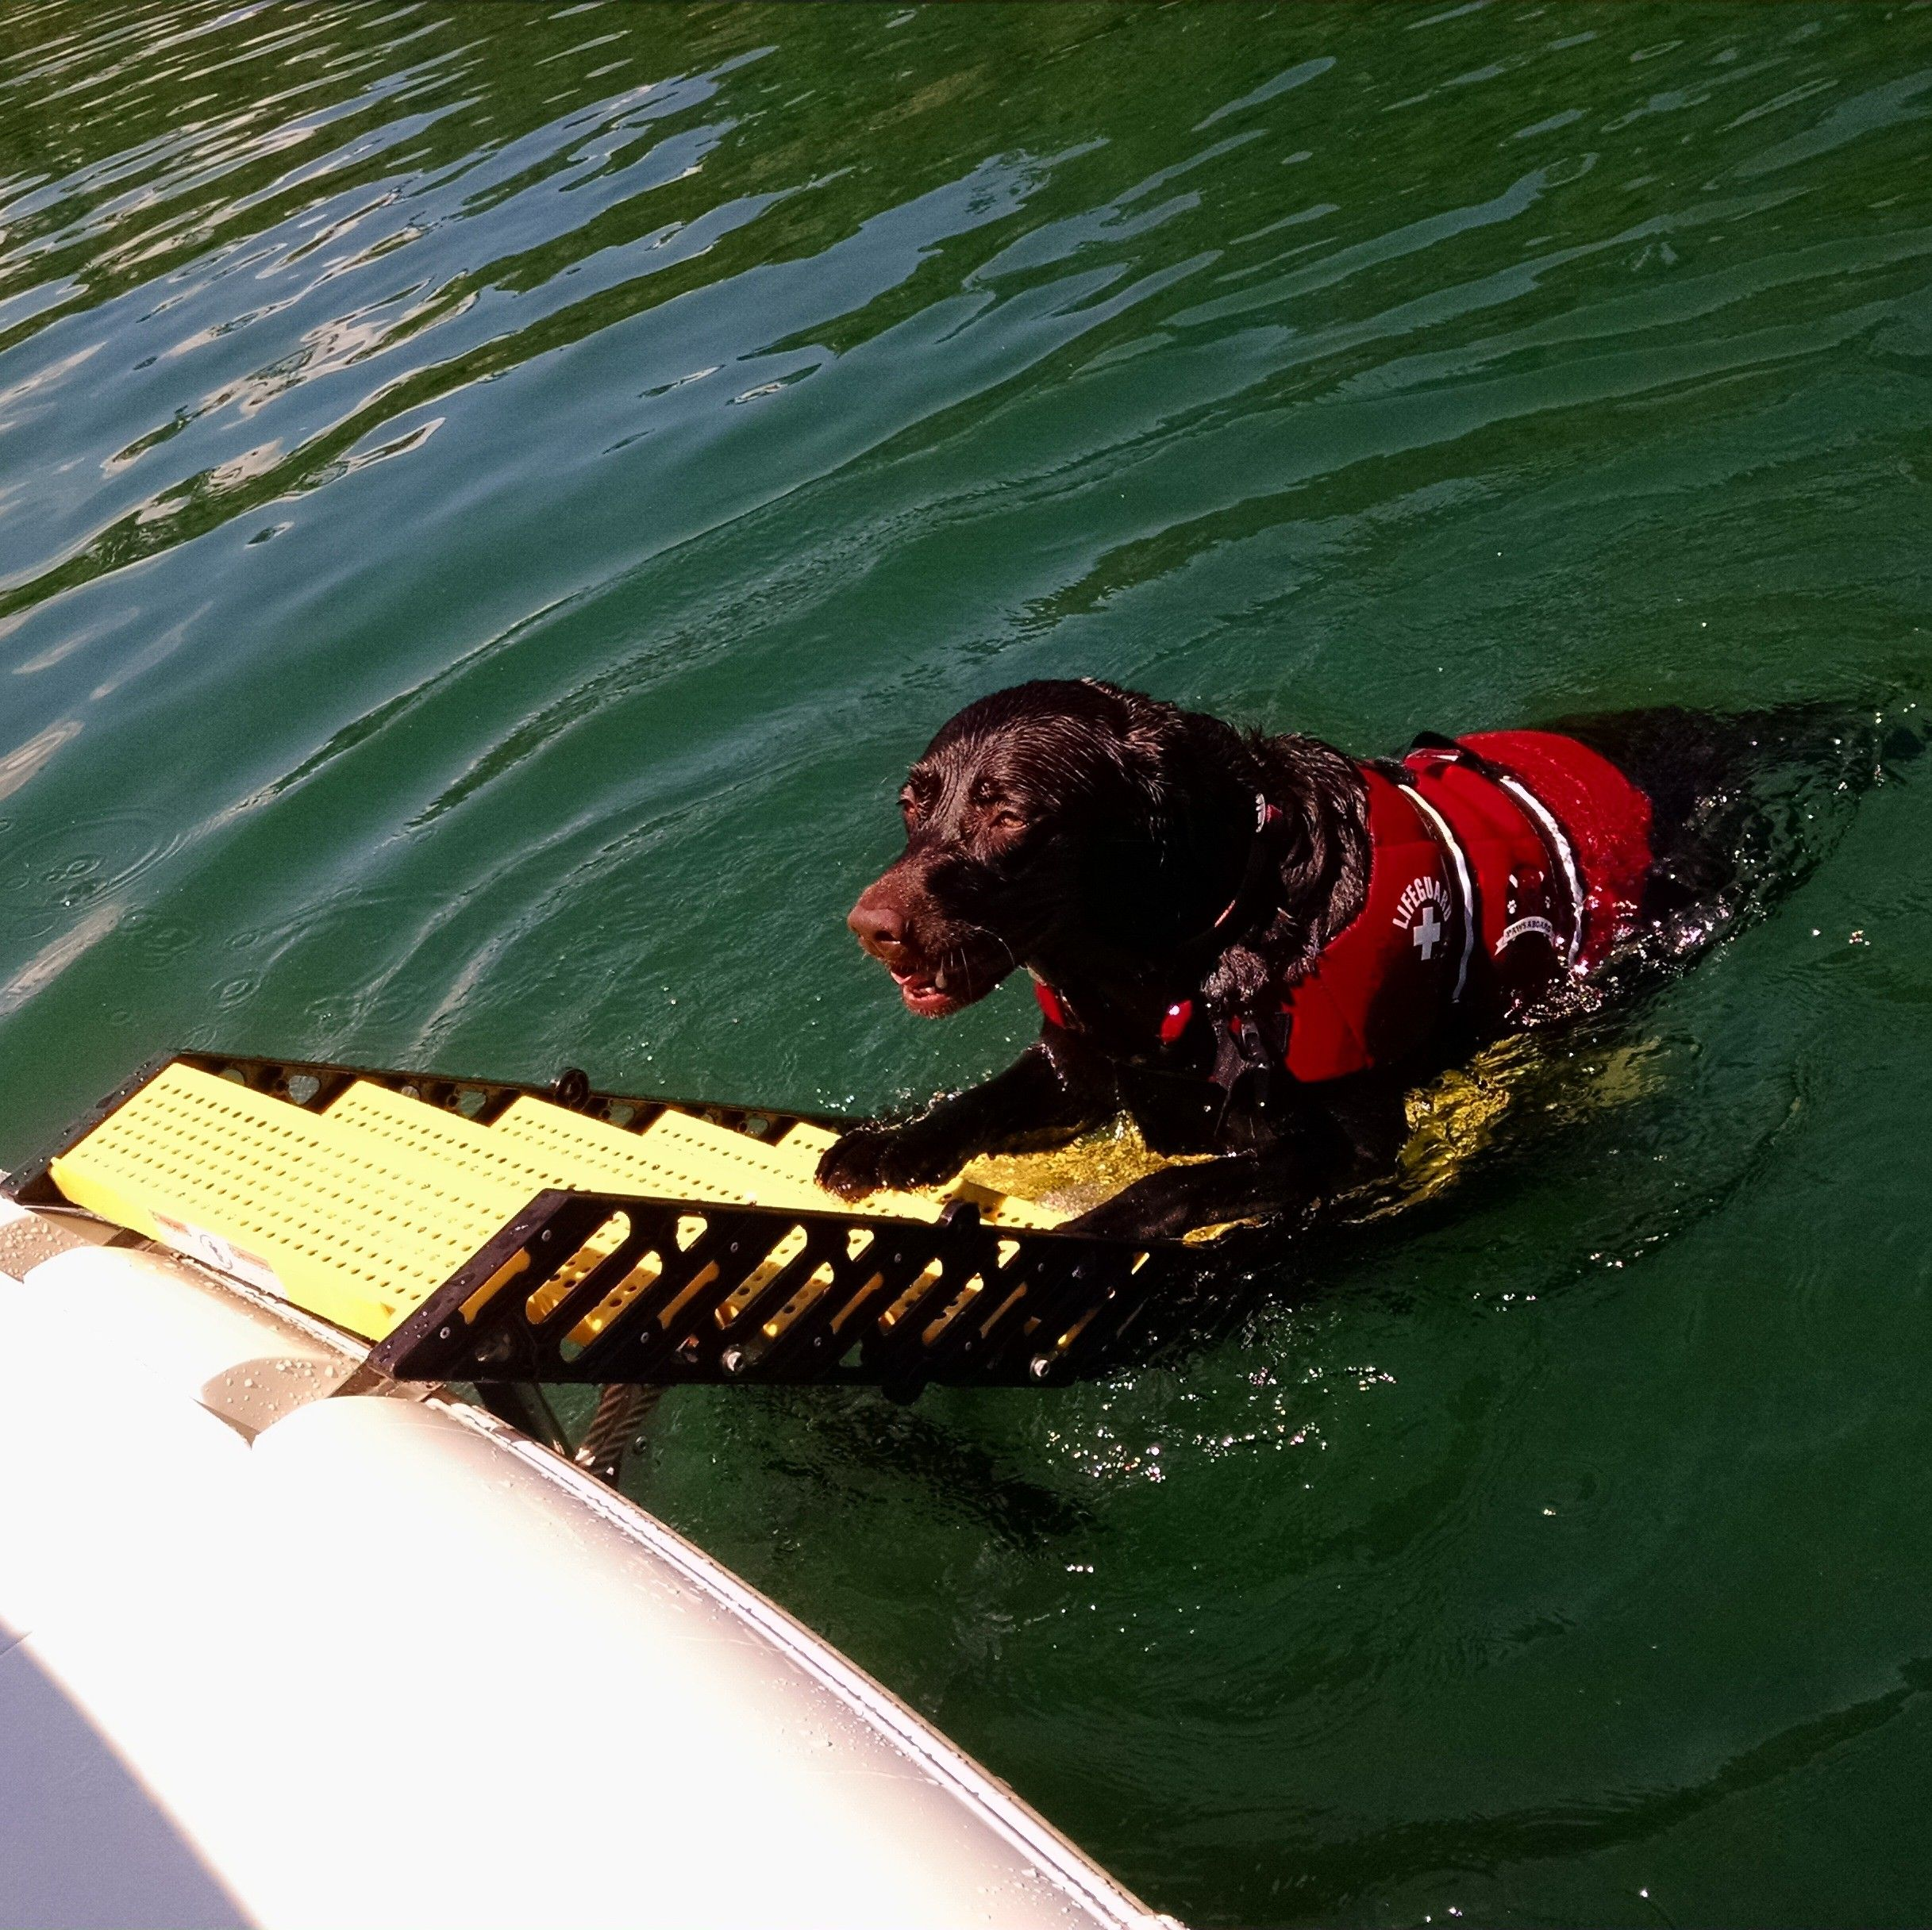 Maddie with WAG Boarding Steps™ Model SLM-12 | WAG Users